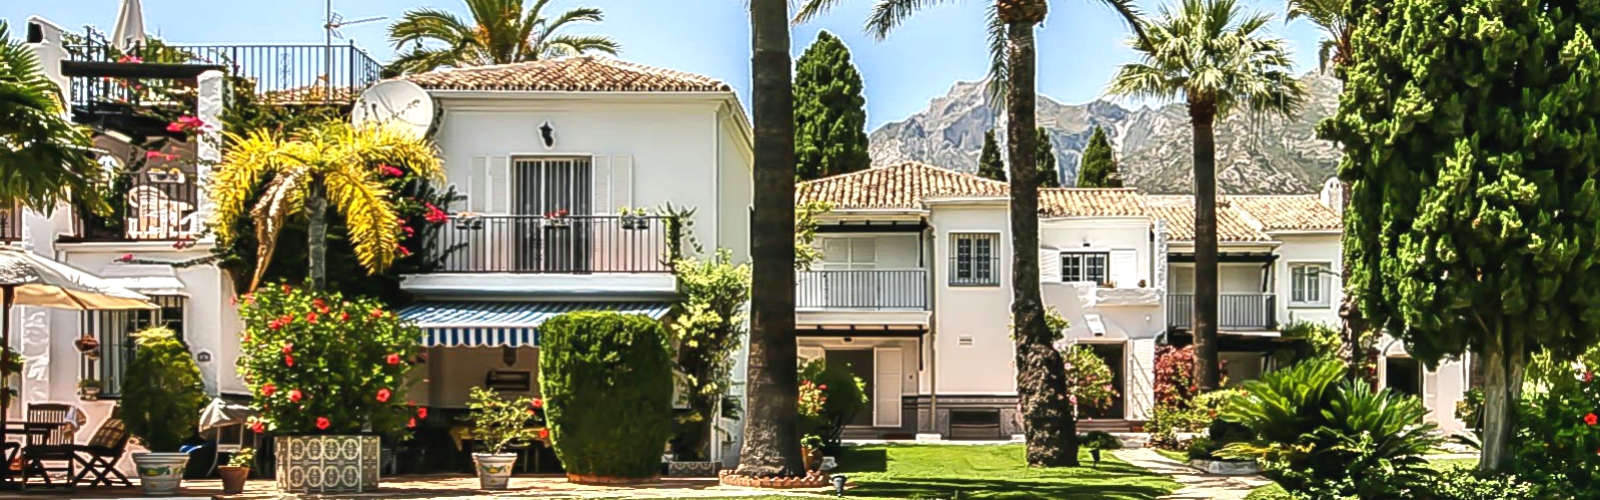 Semi-detached house for rent in Sierra Blanca - Costa del Sol